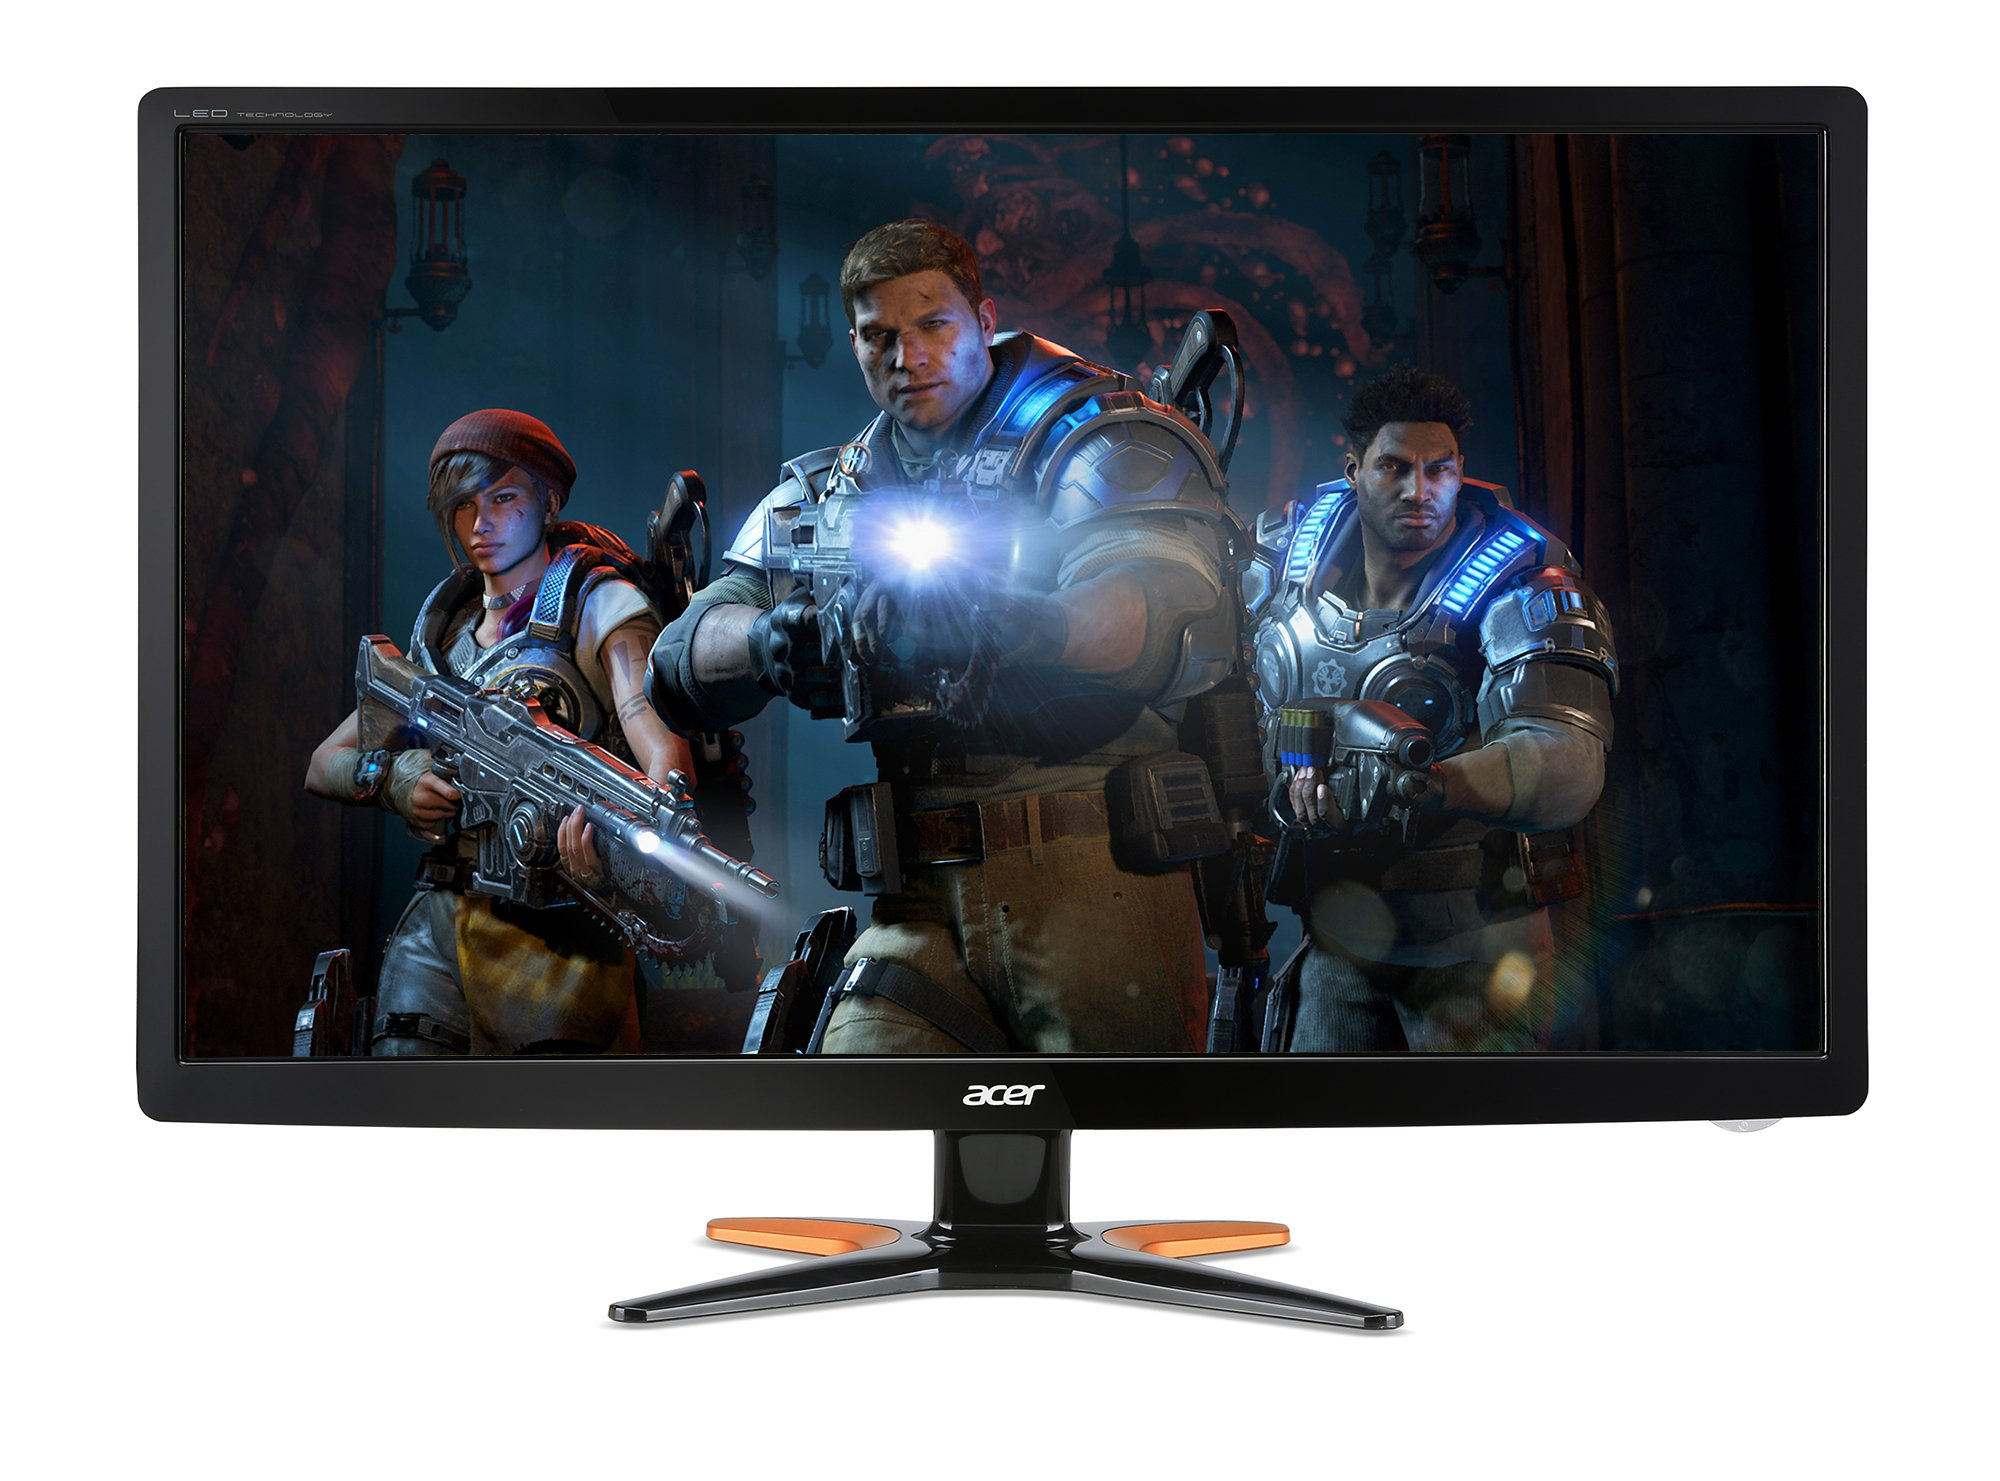 """Acer Gaming 3D Monitor 27"""" GN276HL bid 1920 x 1080 144Hz Refresh Rate 1ms Response Time (VGA, DVI & HDMI Ports) by Acer (Image #1)"""